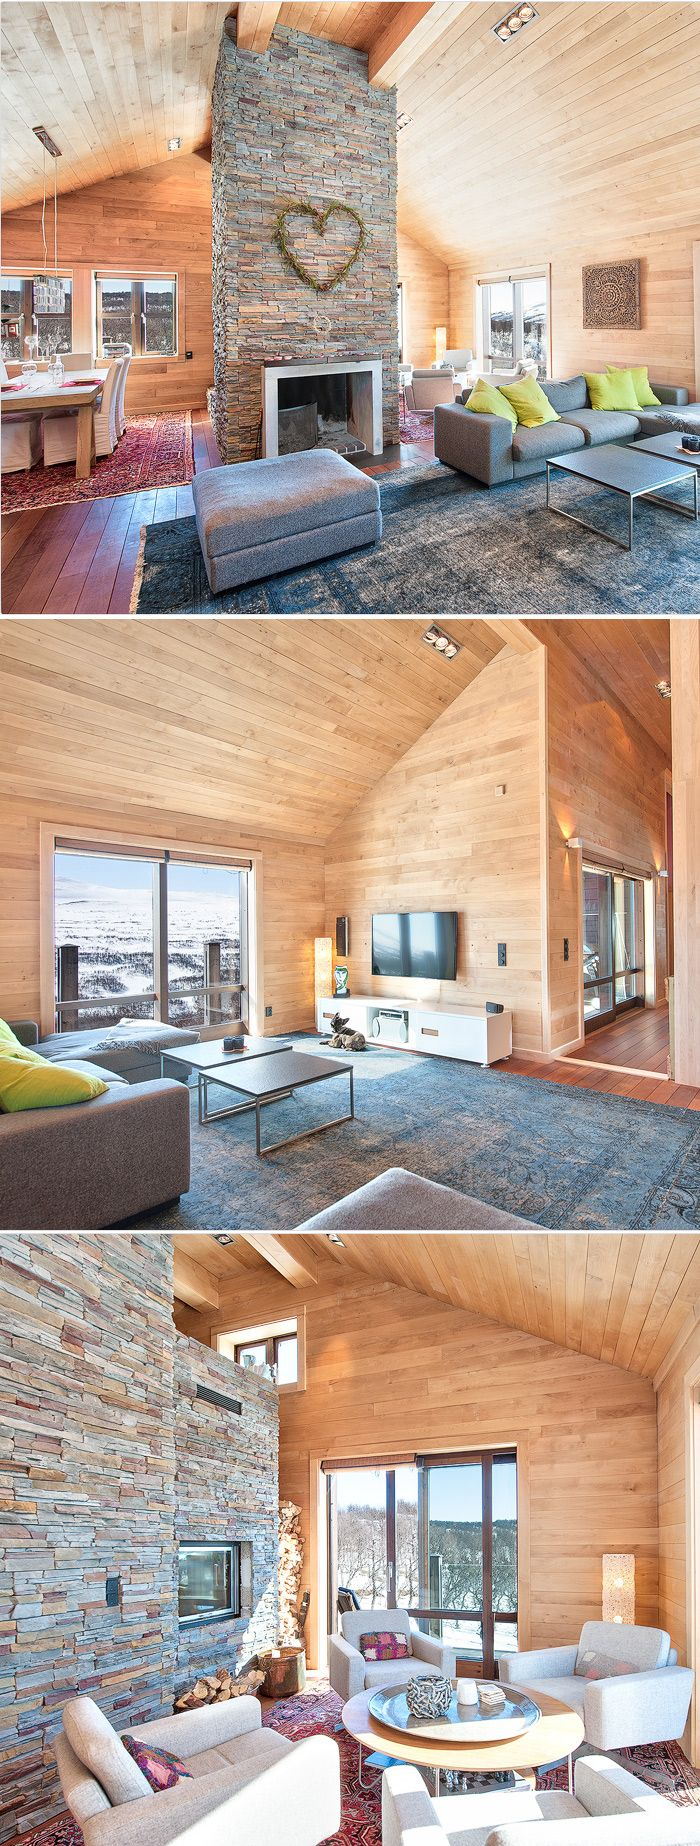 Wood boarding in the living room architecture for Innendekoration chalet